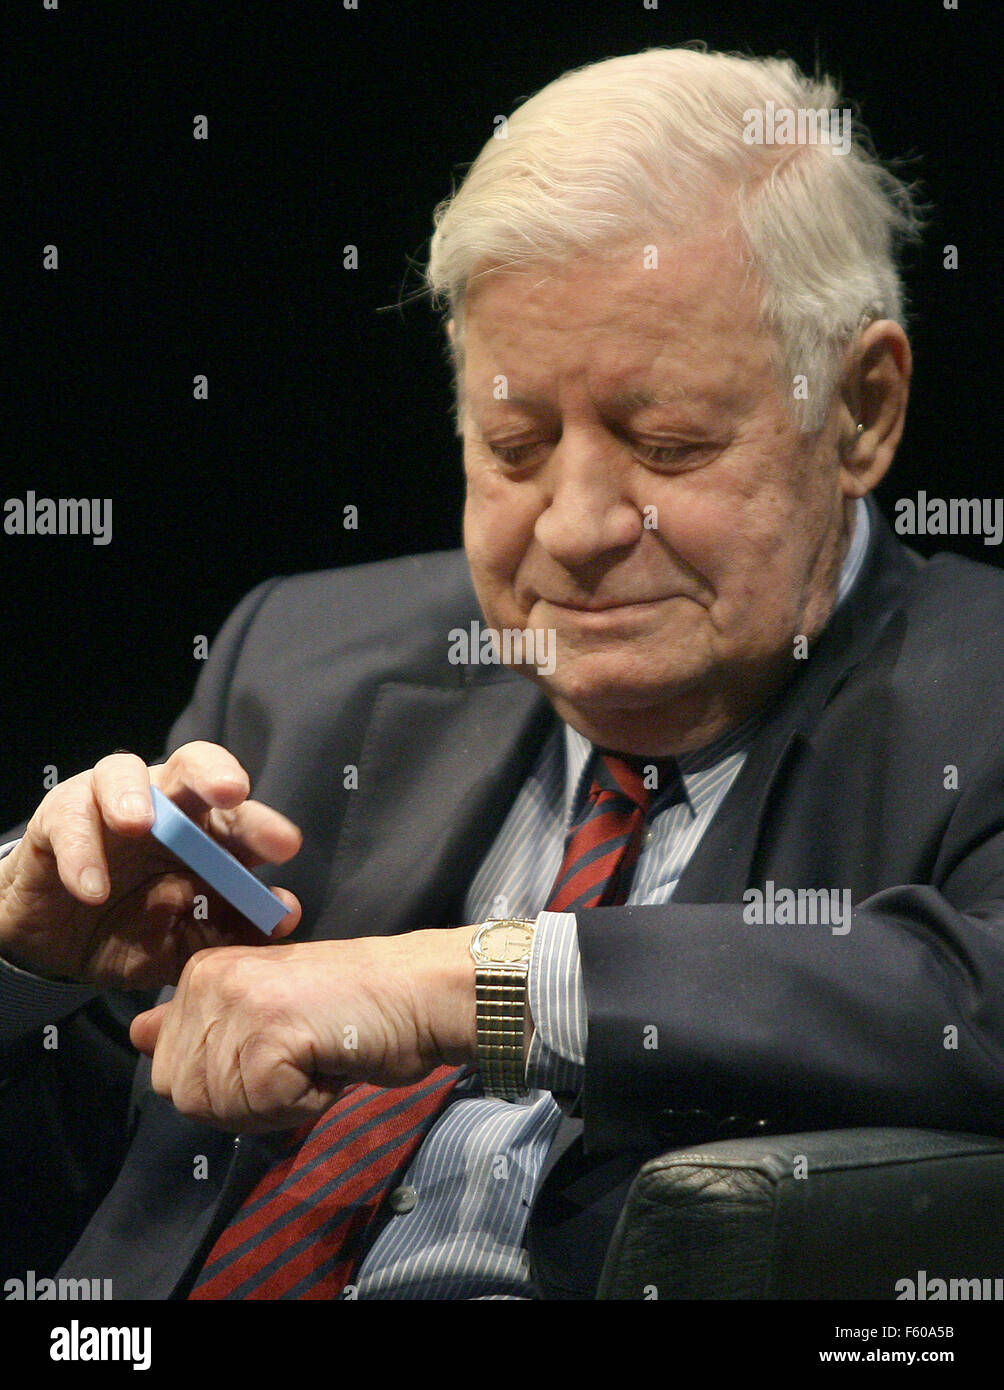 Former Chancellor Helmut Schmidt puts snuff tobacco on his hand during an SPD event at Thalia Theater in Hamburg Stock Photo